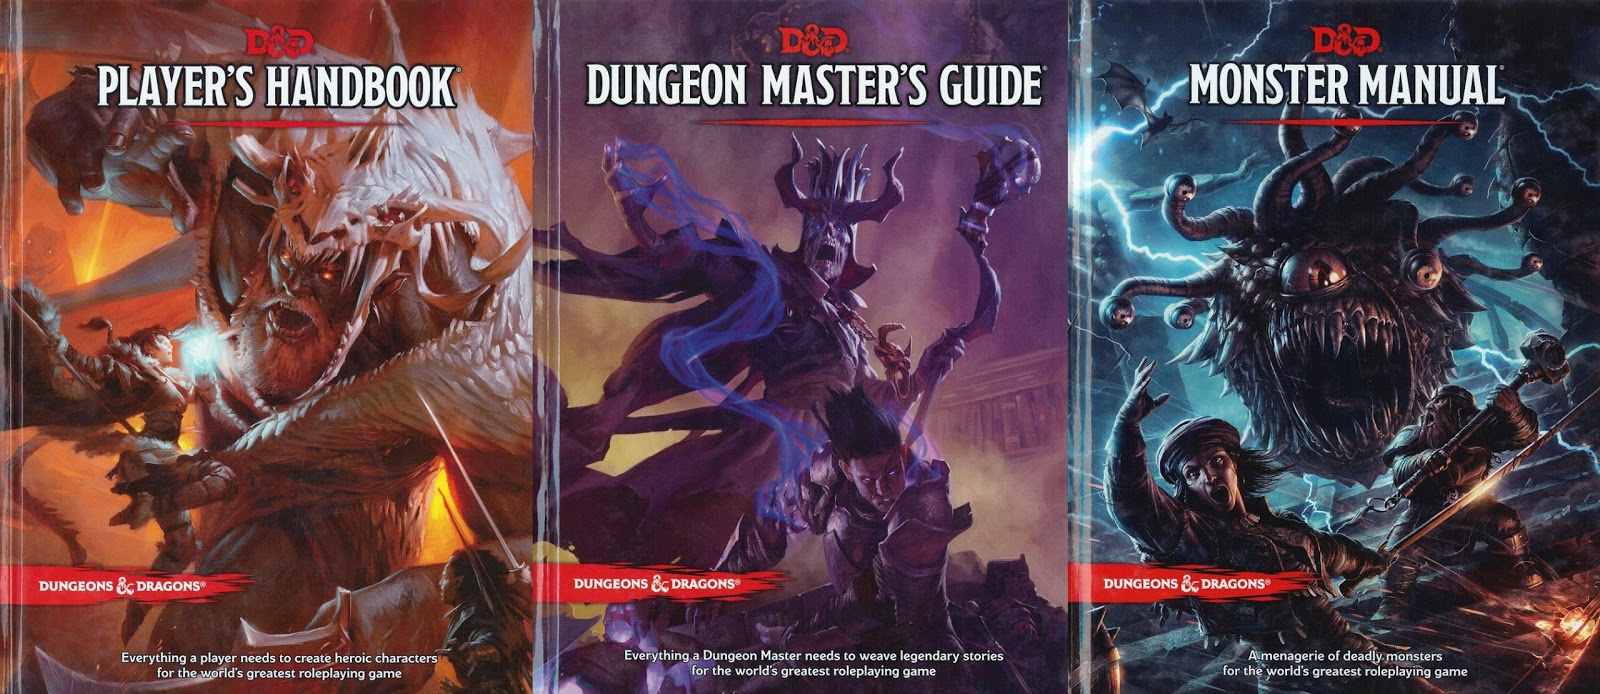 Dnd 5e monsters manual [free pdf download].